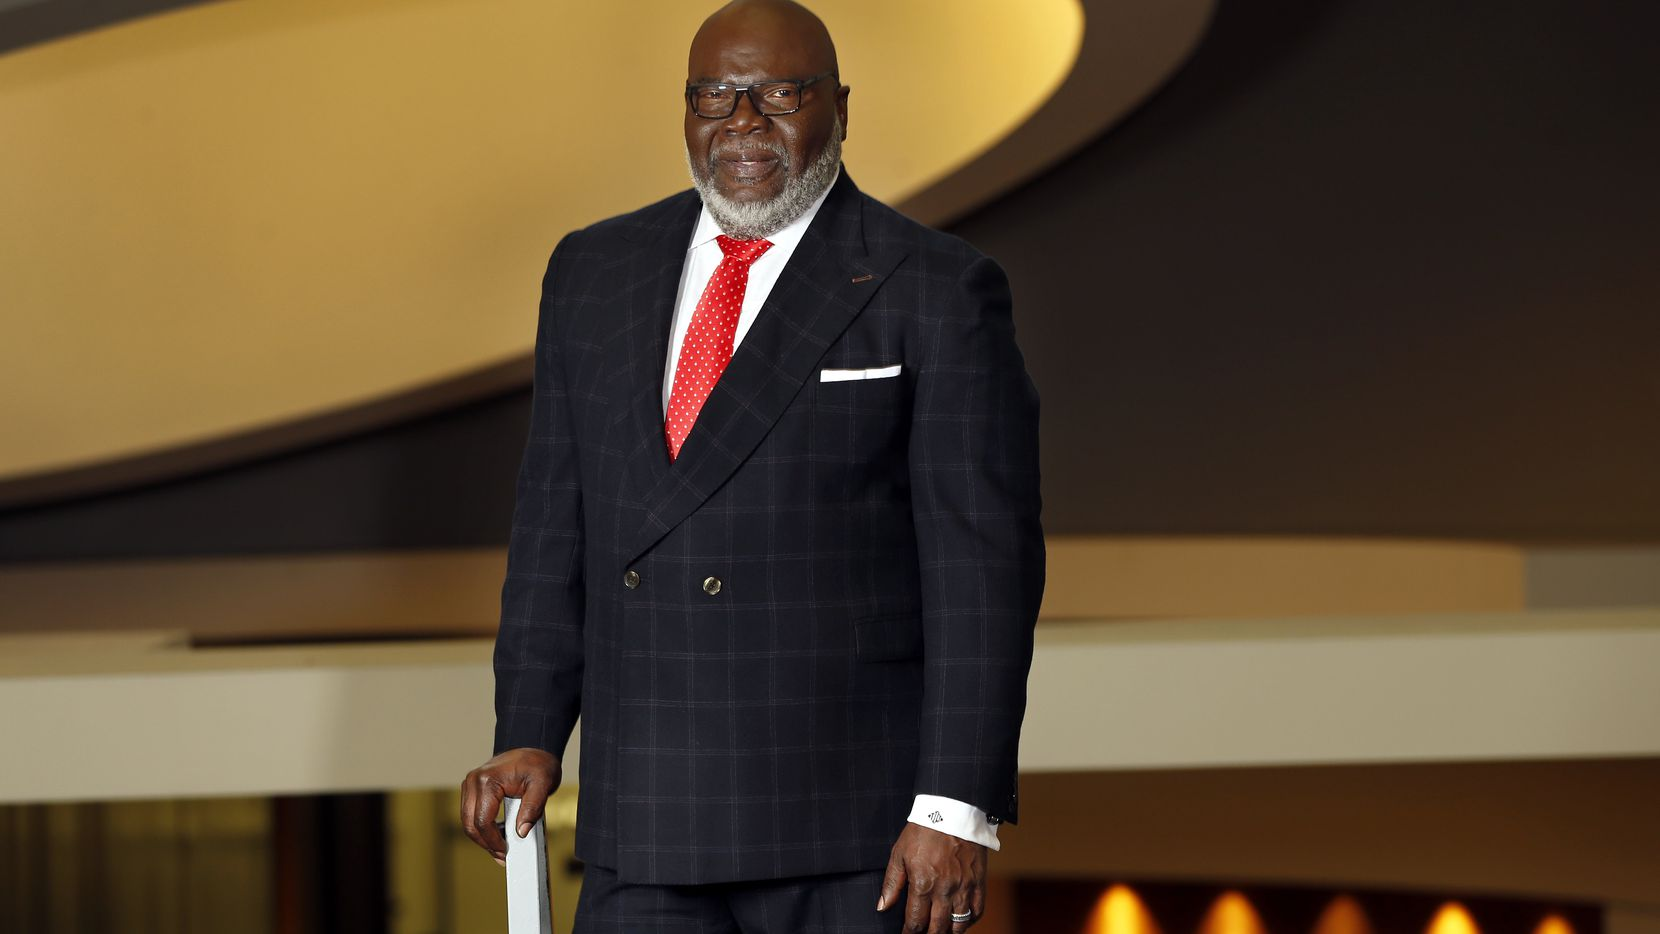 Bishop T.D. Jakes, senior pastor at The Potter's House, is creating a nonprofit foundation to promote education, job training and collaborations with business.